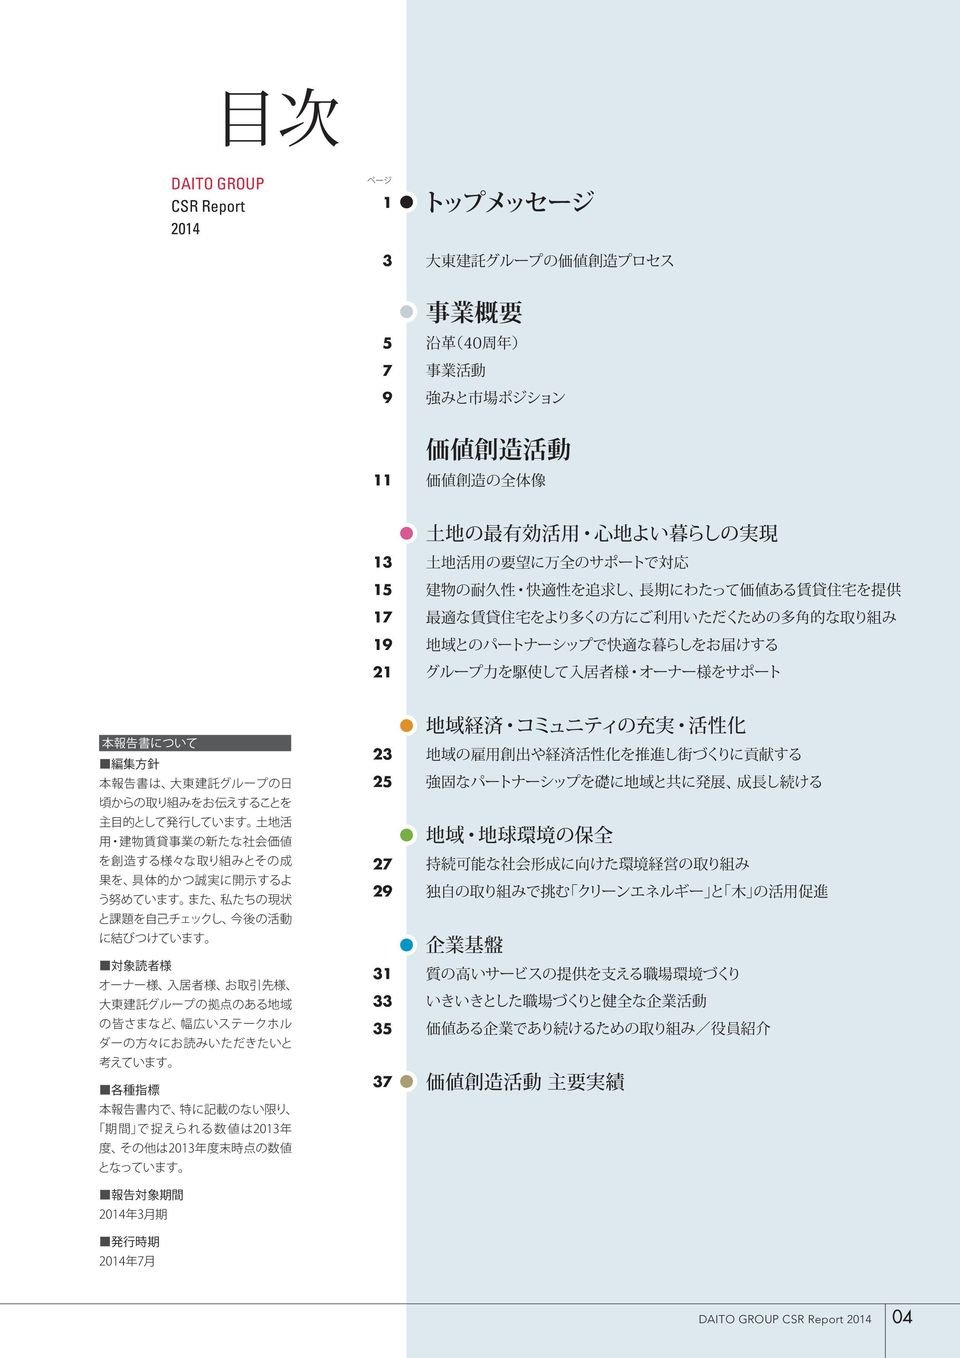 DAITO GROUP CSR Report 2014